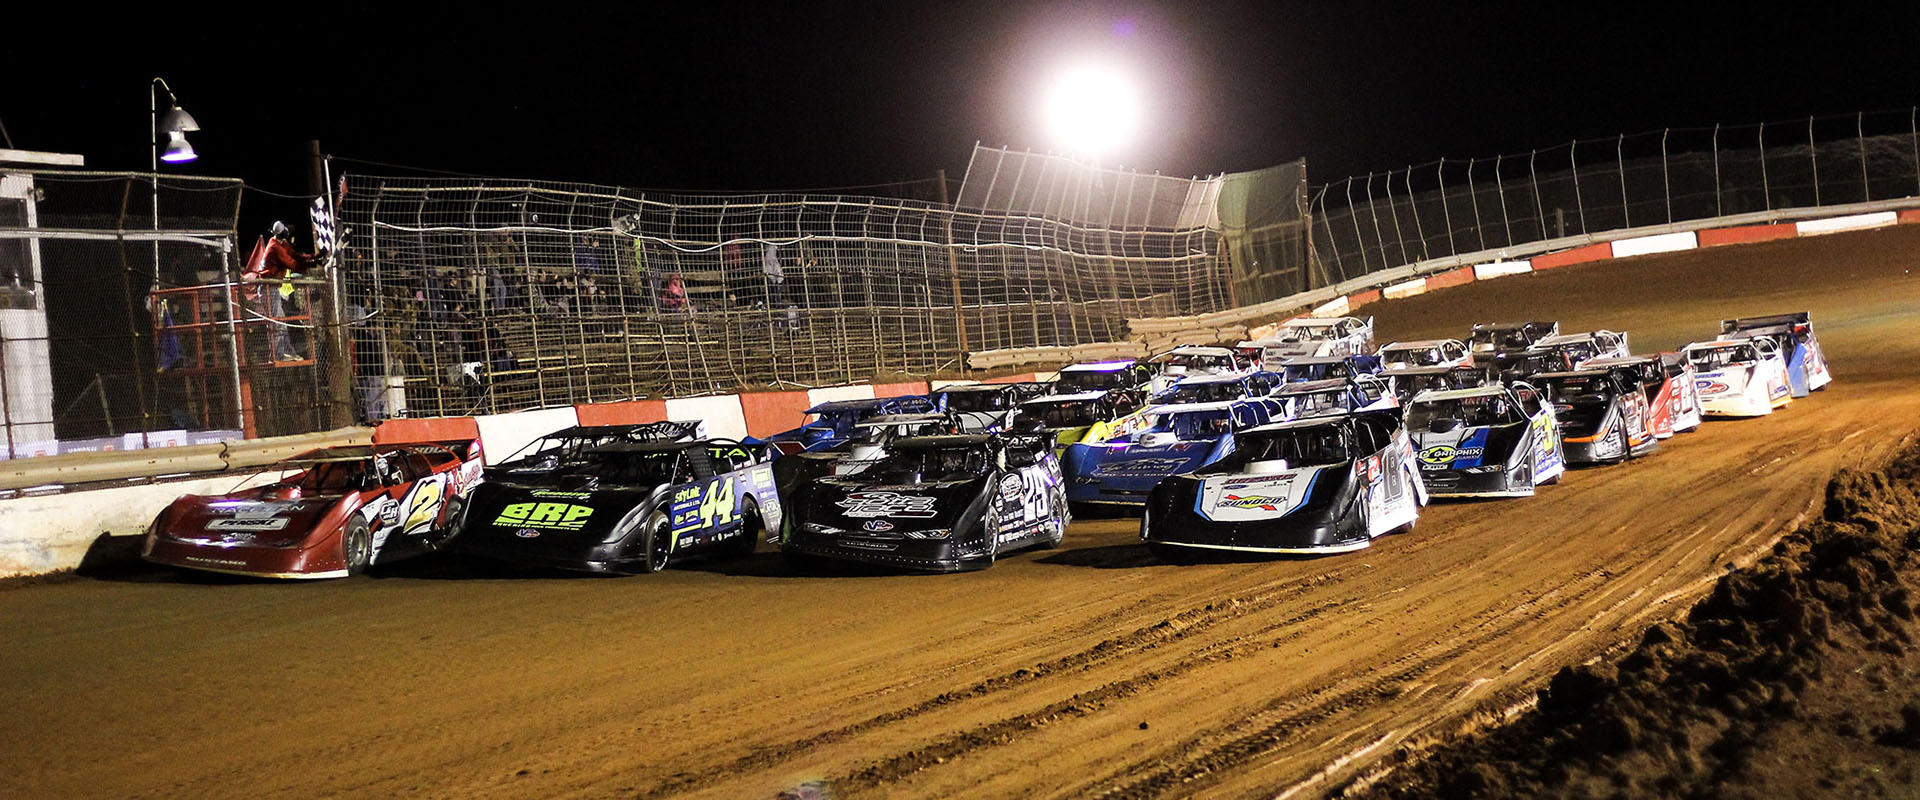 World of Outlaws Late Model Series | World of Outlaws